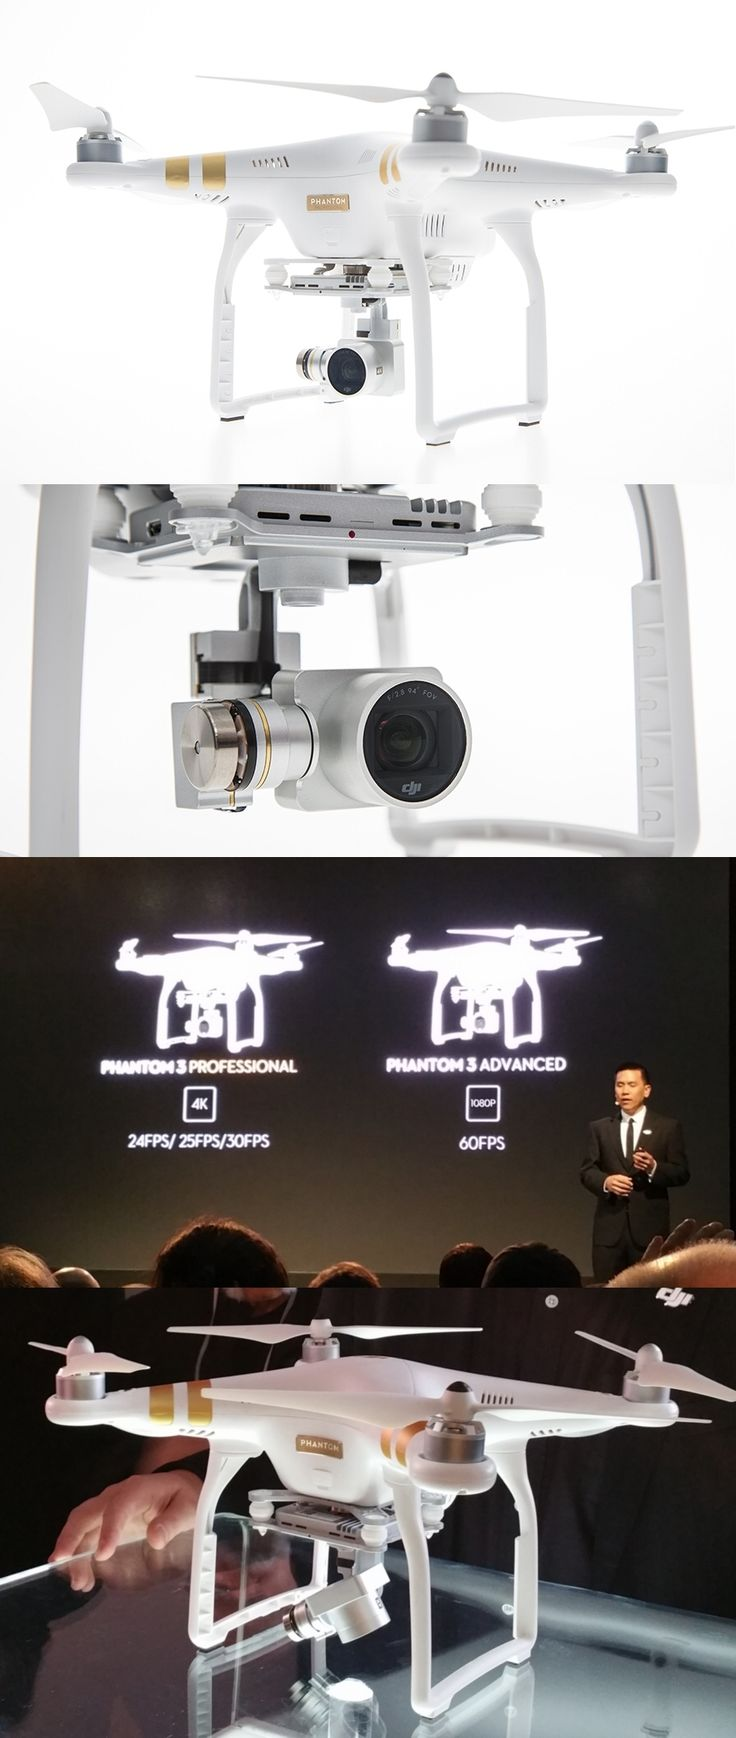 It's a bird! It's a plane. No, it's drone of course! The DJI Phantom 3 quadcopter, unveiled in NYC today, has a distortion-free 94-degree-field-of-view camera which renders smooth, sharp 30fps 4K ($1,259 Professional model) or 60fps 1080p ($999 Advanced) videos. The units take 12MP still photos and the DJI Pilot app integrates with YouTube, thus allowing users to livestream their aerial magic. If the 2.8-pound unit loses contact with its remote, it hovers in place until the next command.